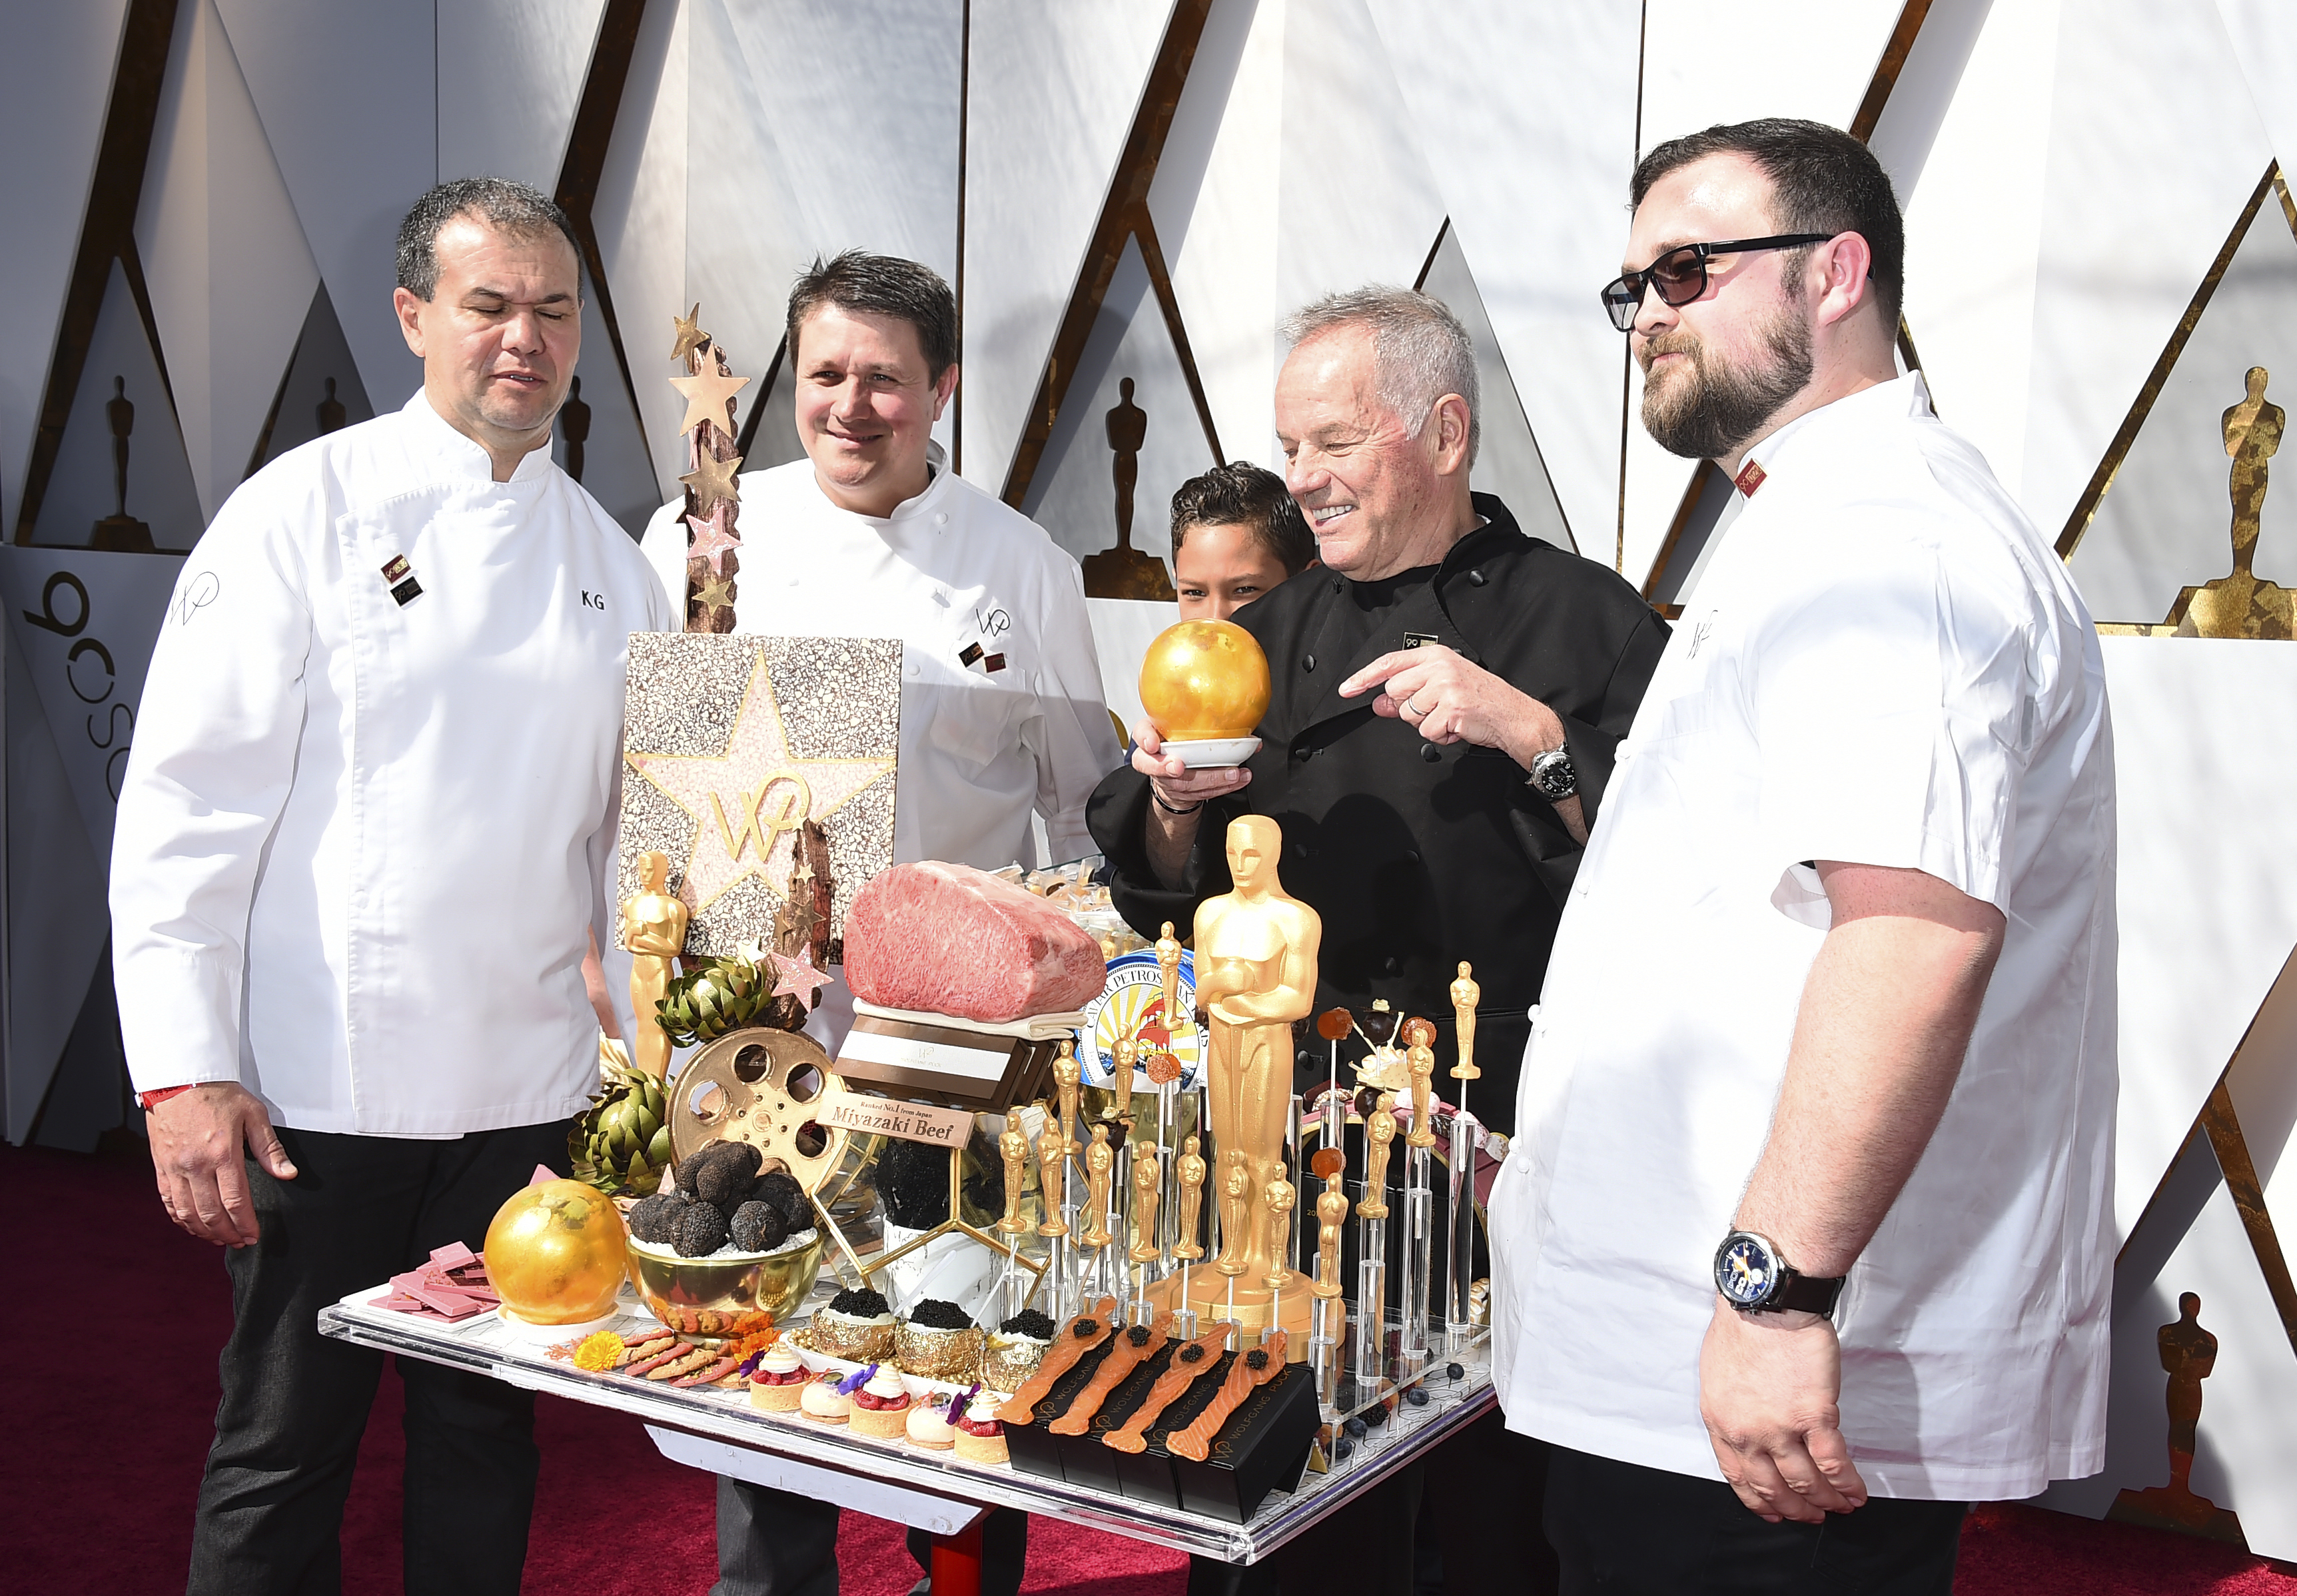 "<div class=""meta image-caption""><div class=""origin-logo origin-image none""><span>none</span></div><span class=""caption-text"">Wolfgang Puck, second from right, arrives at the Oscars on Sunday, March 4, 2018, at the Dolby Theatre in Los Angeles. (Jordan Strauss/Invision/AP)</span></div>"